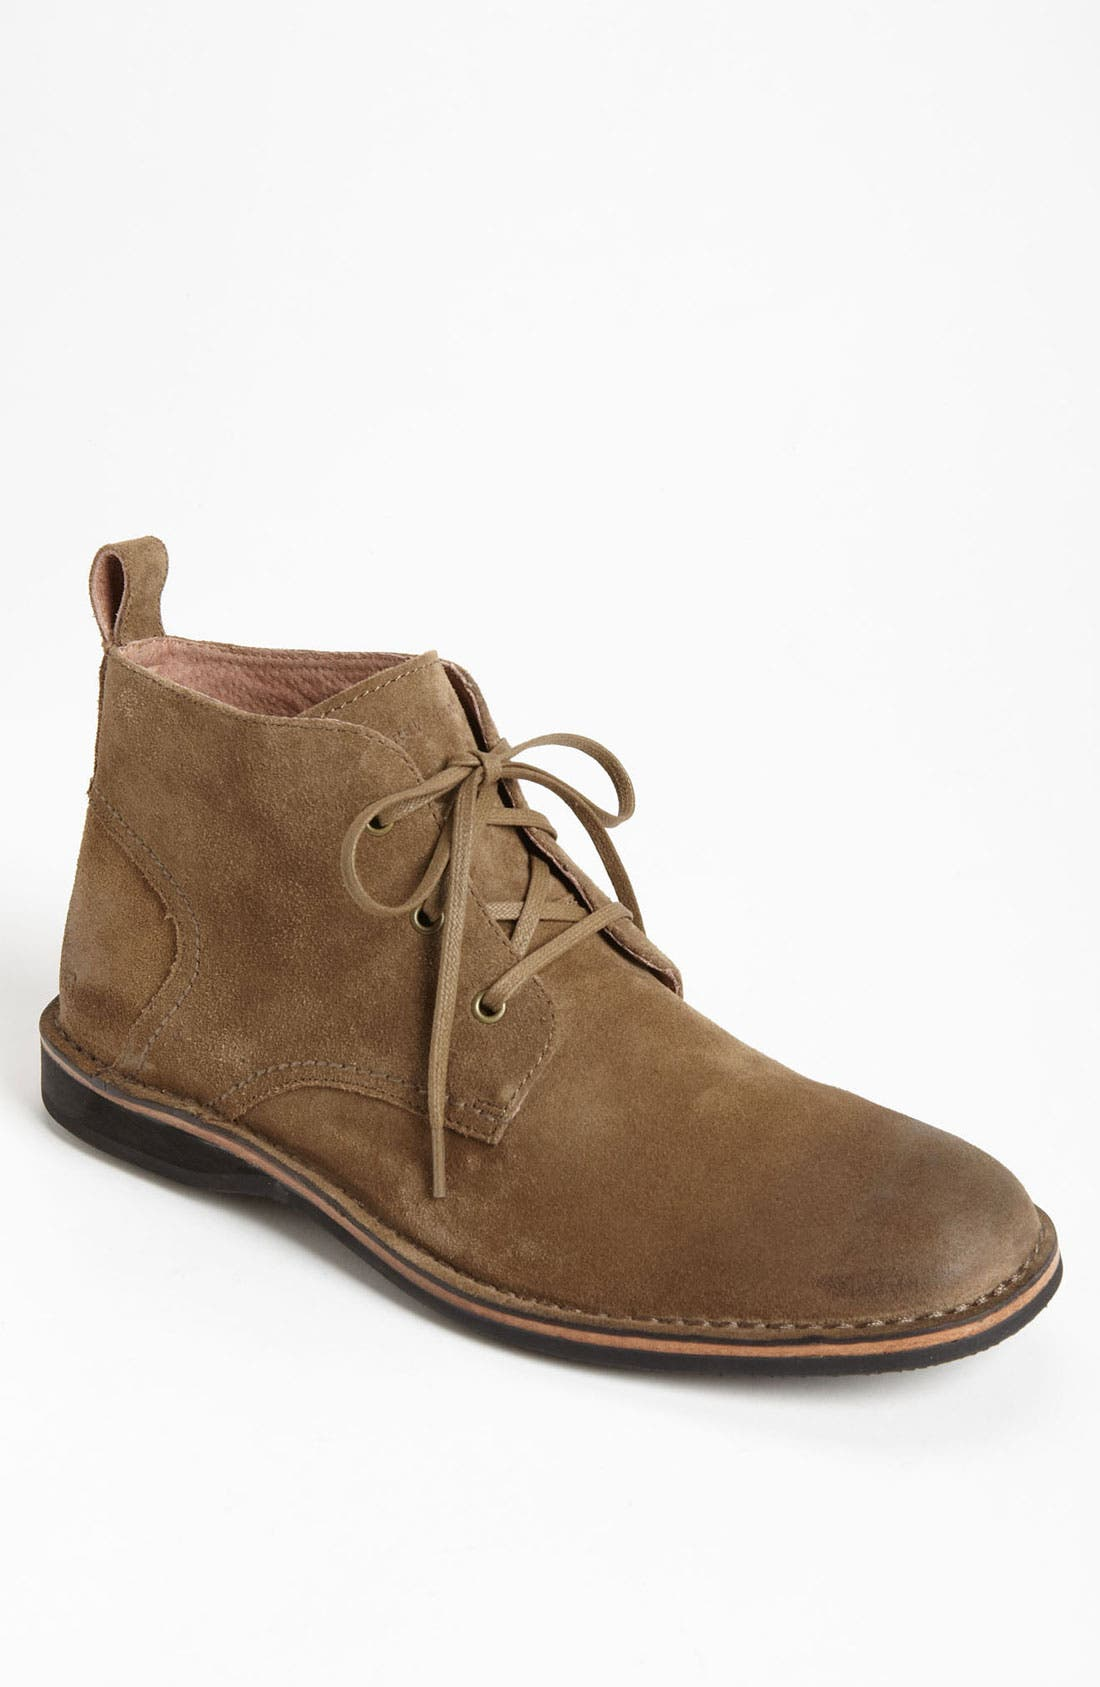 Alternate Image 1 Selected - Andrew Marc 'Dorchester' Chukka Boot (Men)